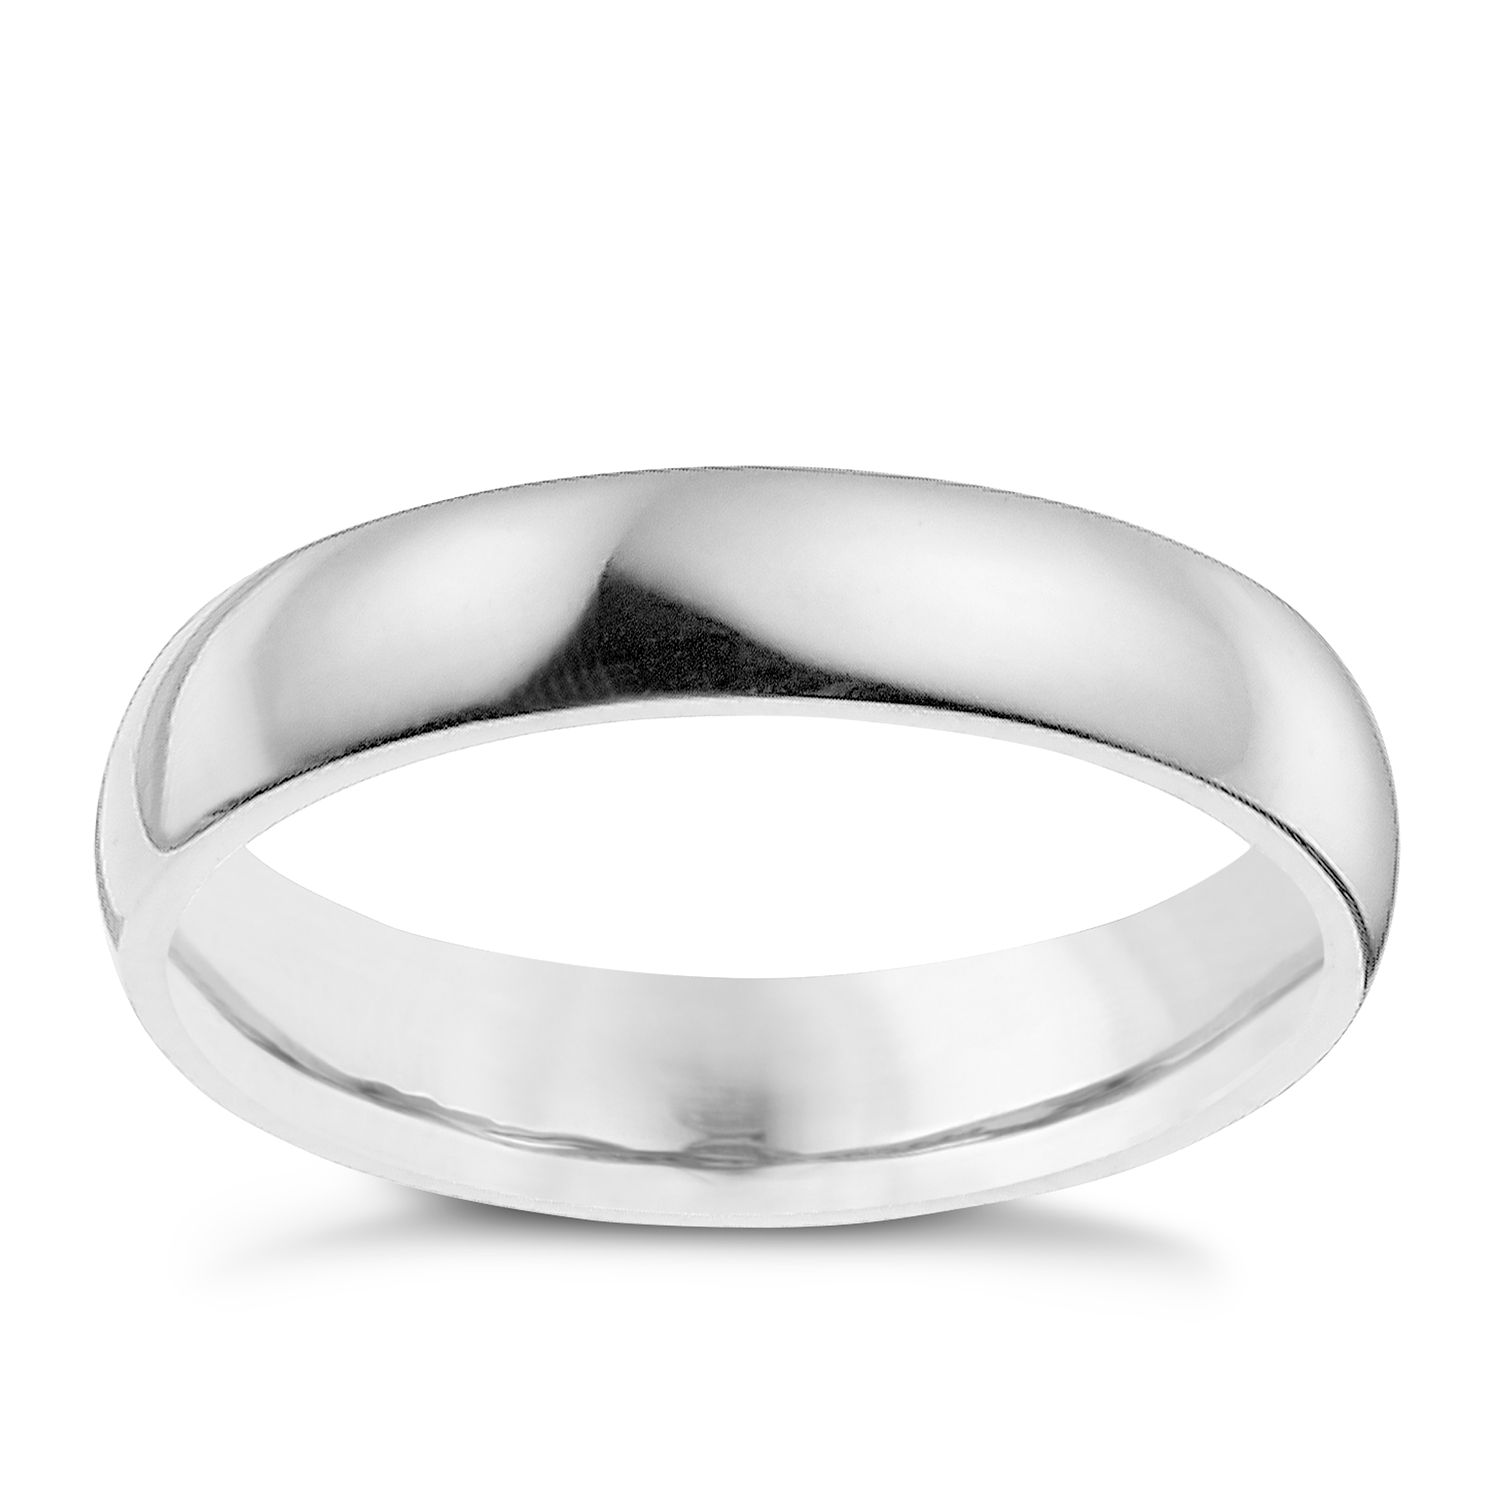 Palladium 950 4mm Extra Heavyweight Court Ring - Product number 8835292